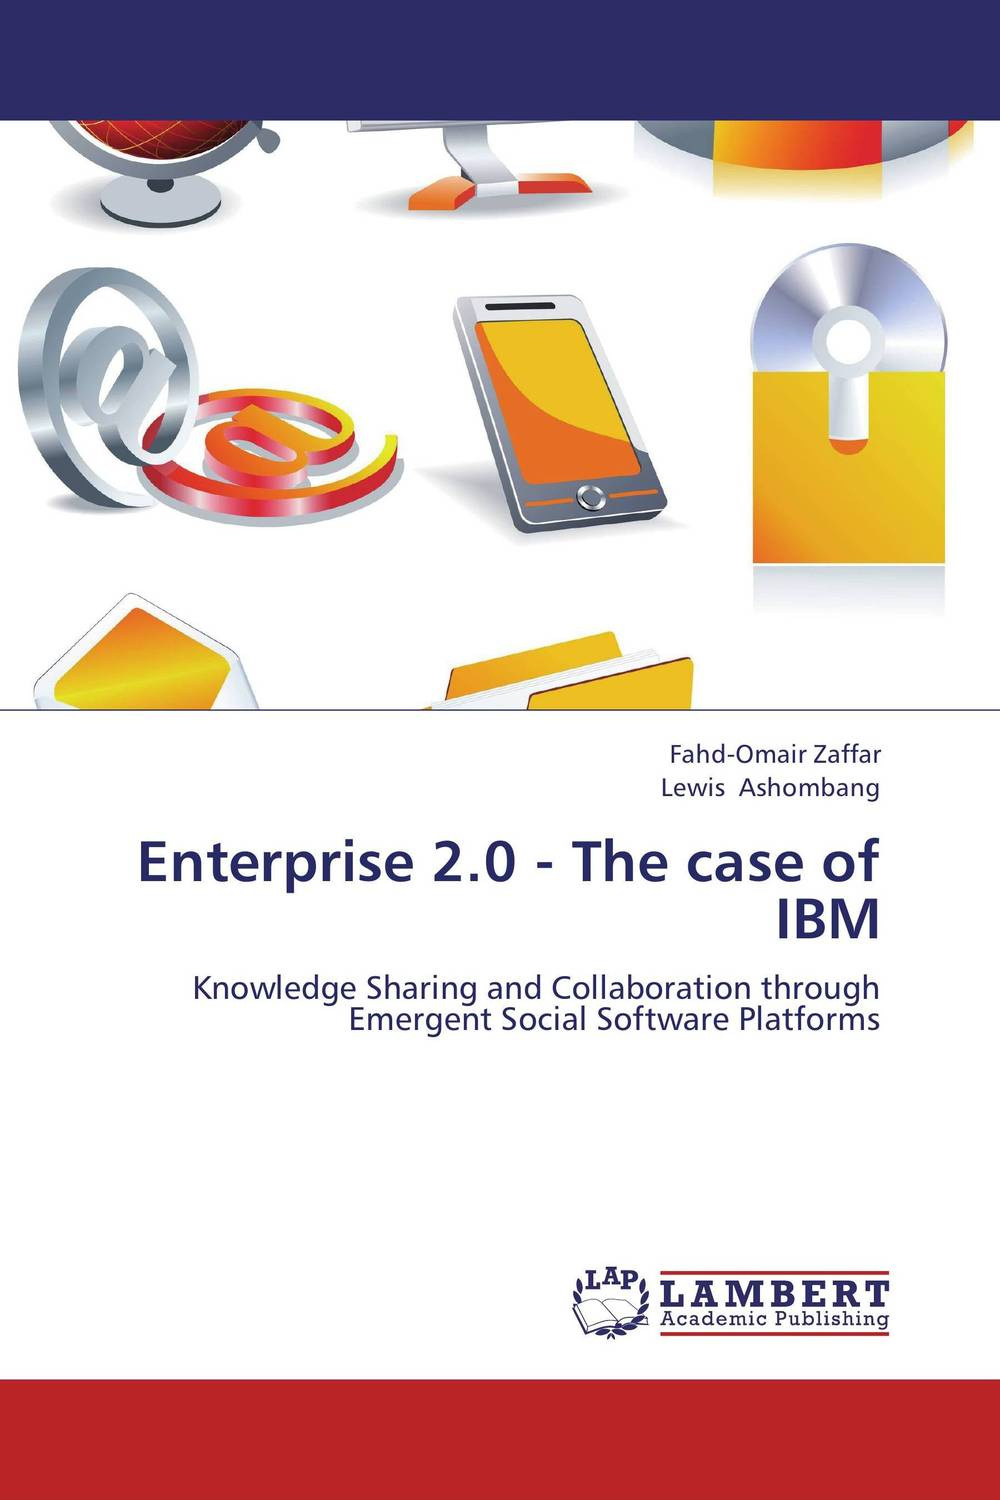 Enterprise 2.0 - The case of IBM